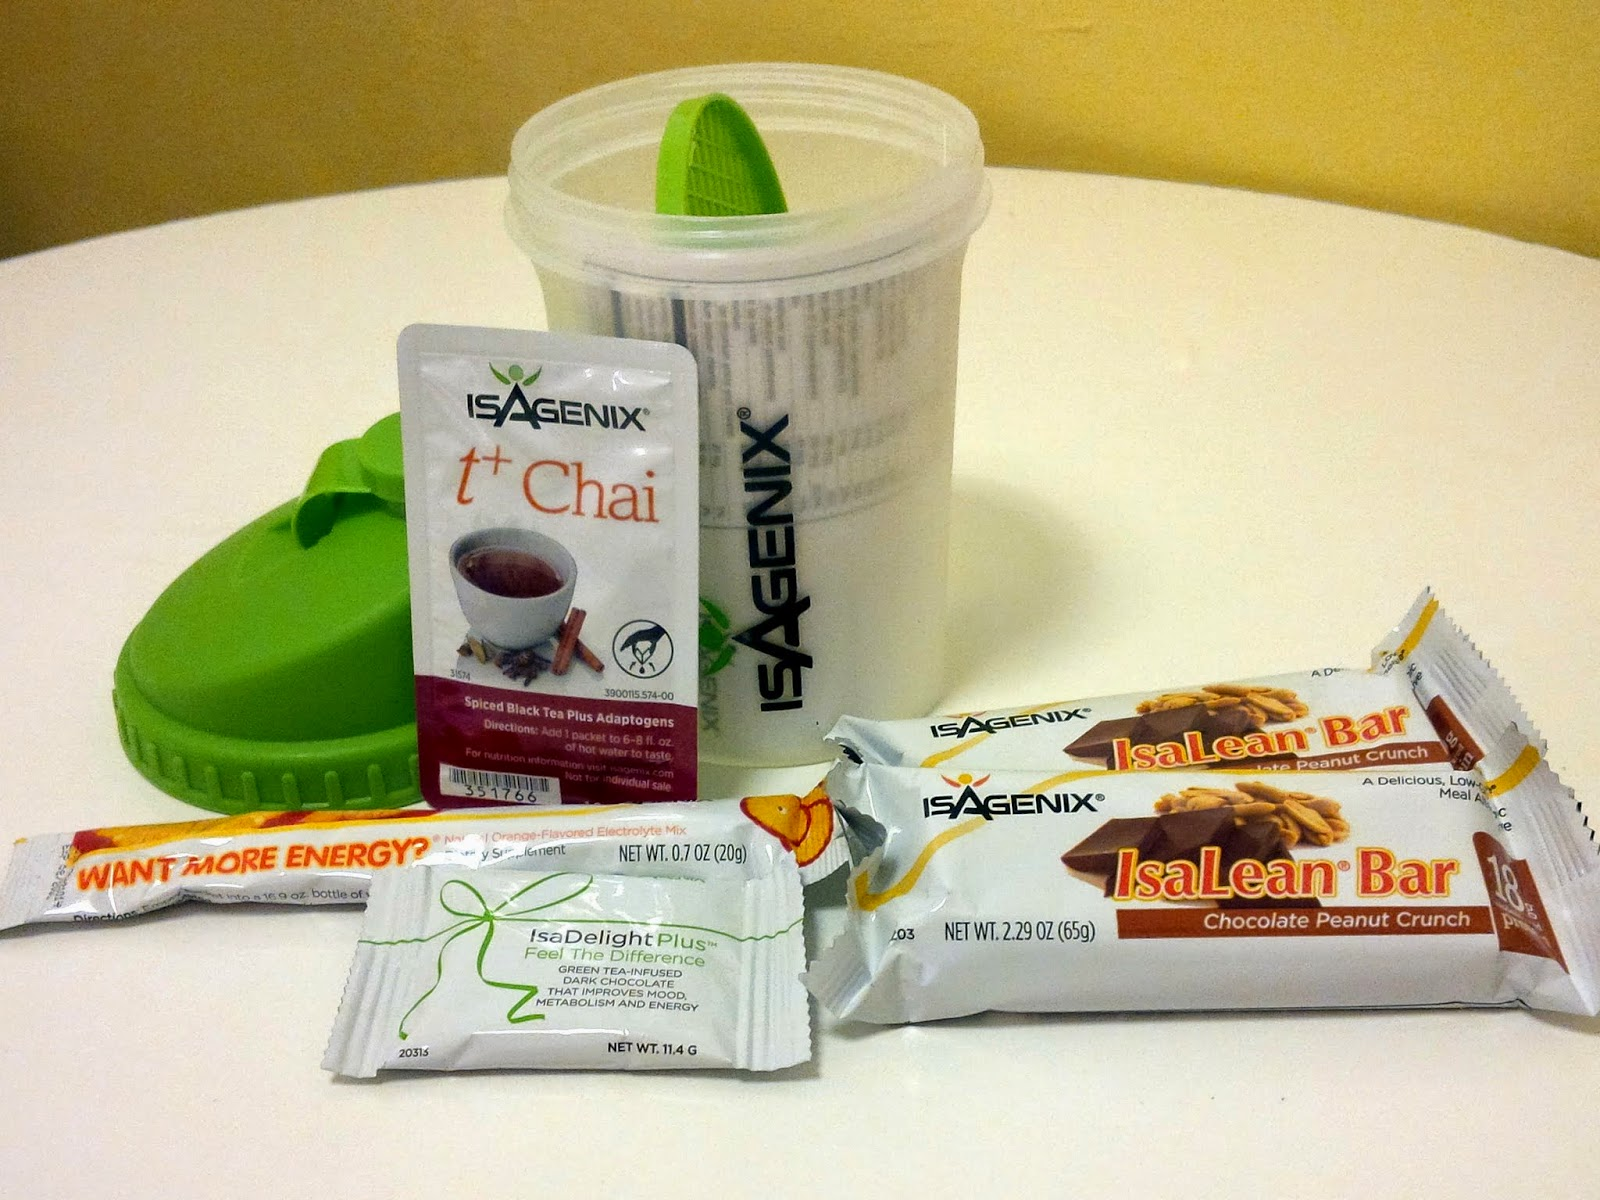 Isagenix 5-piece sample pack with shaker bottle